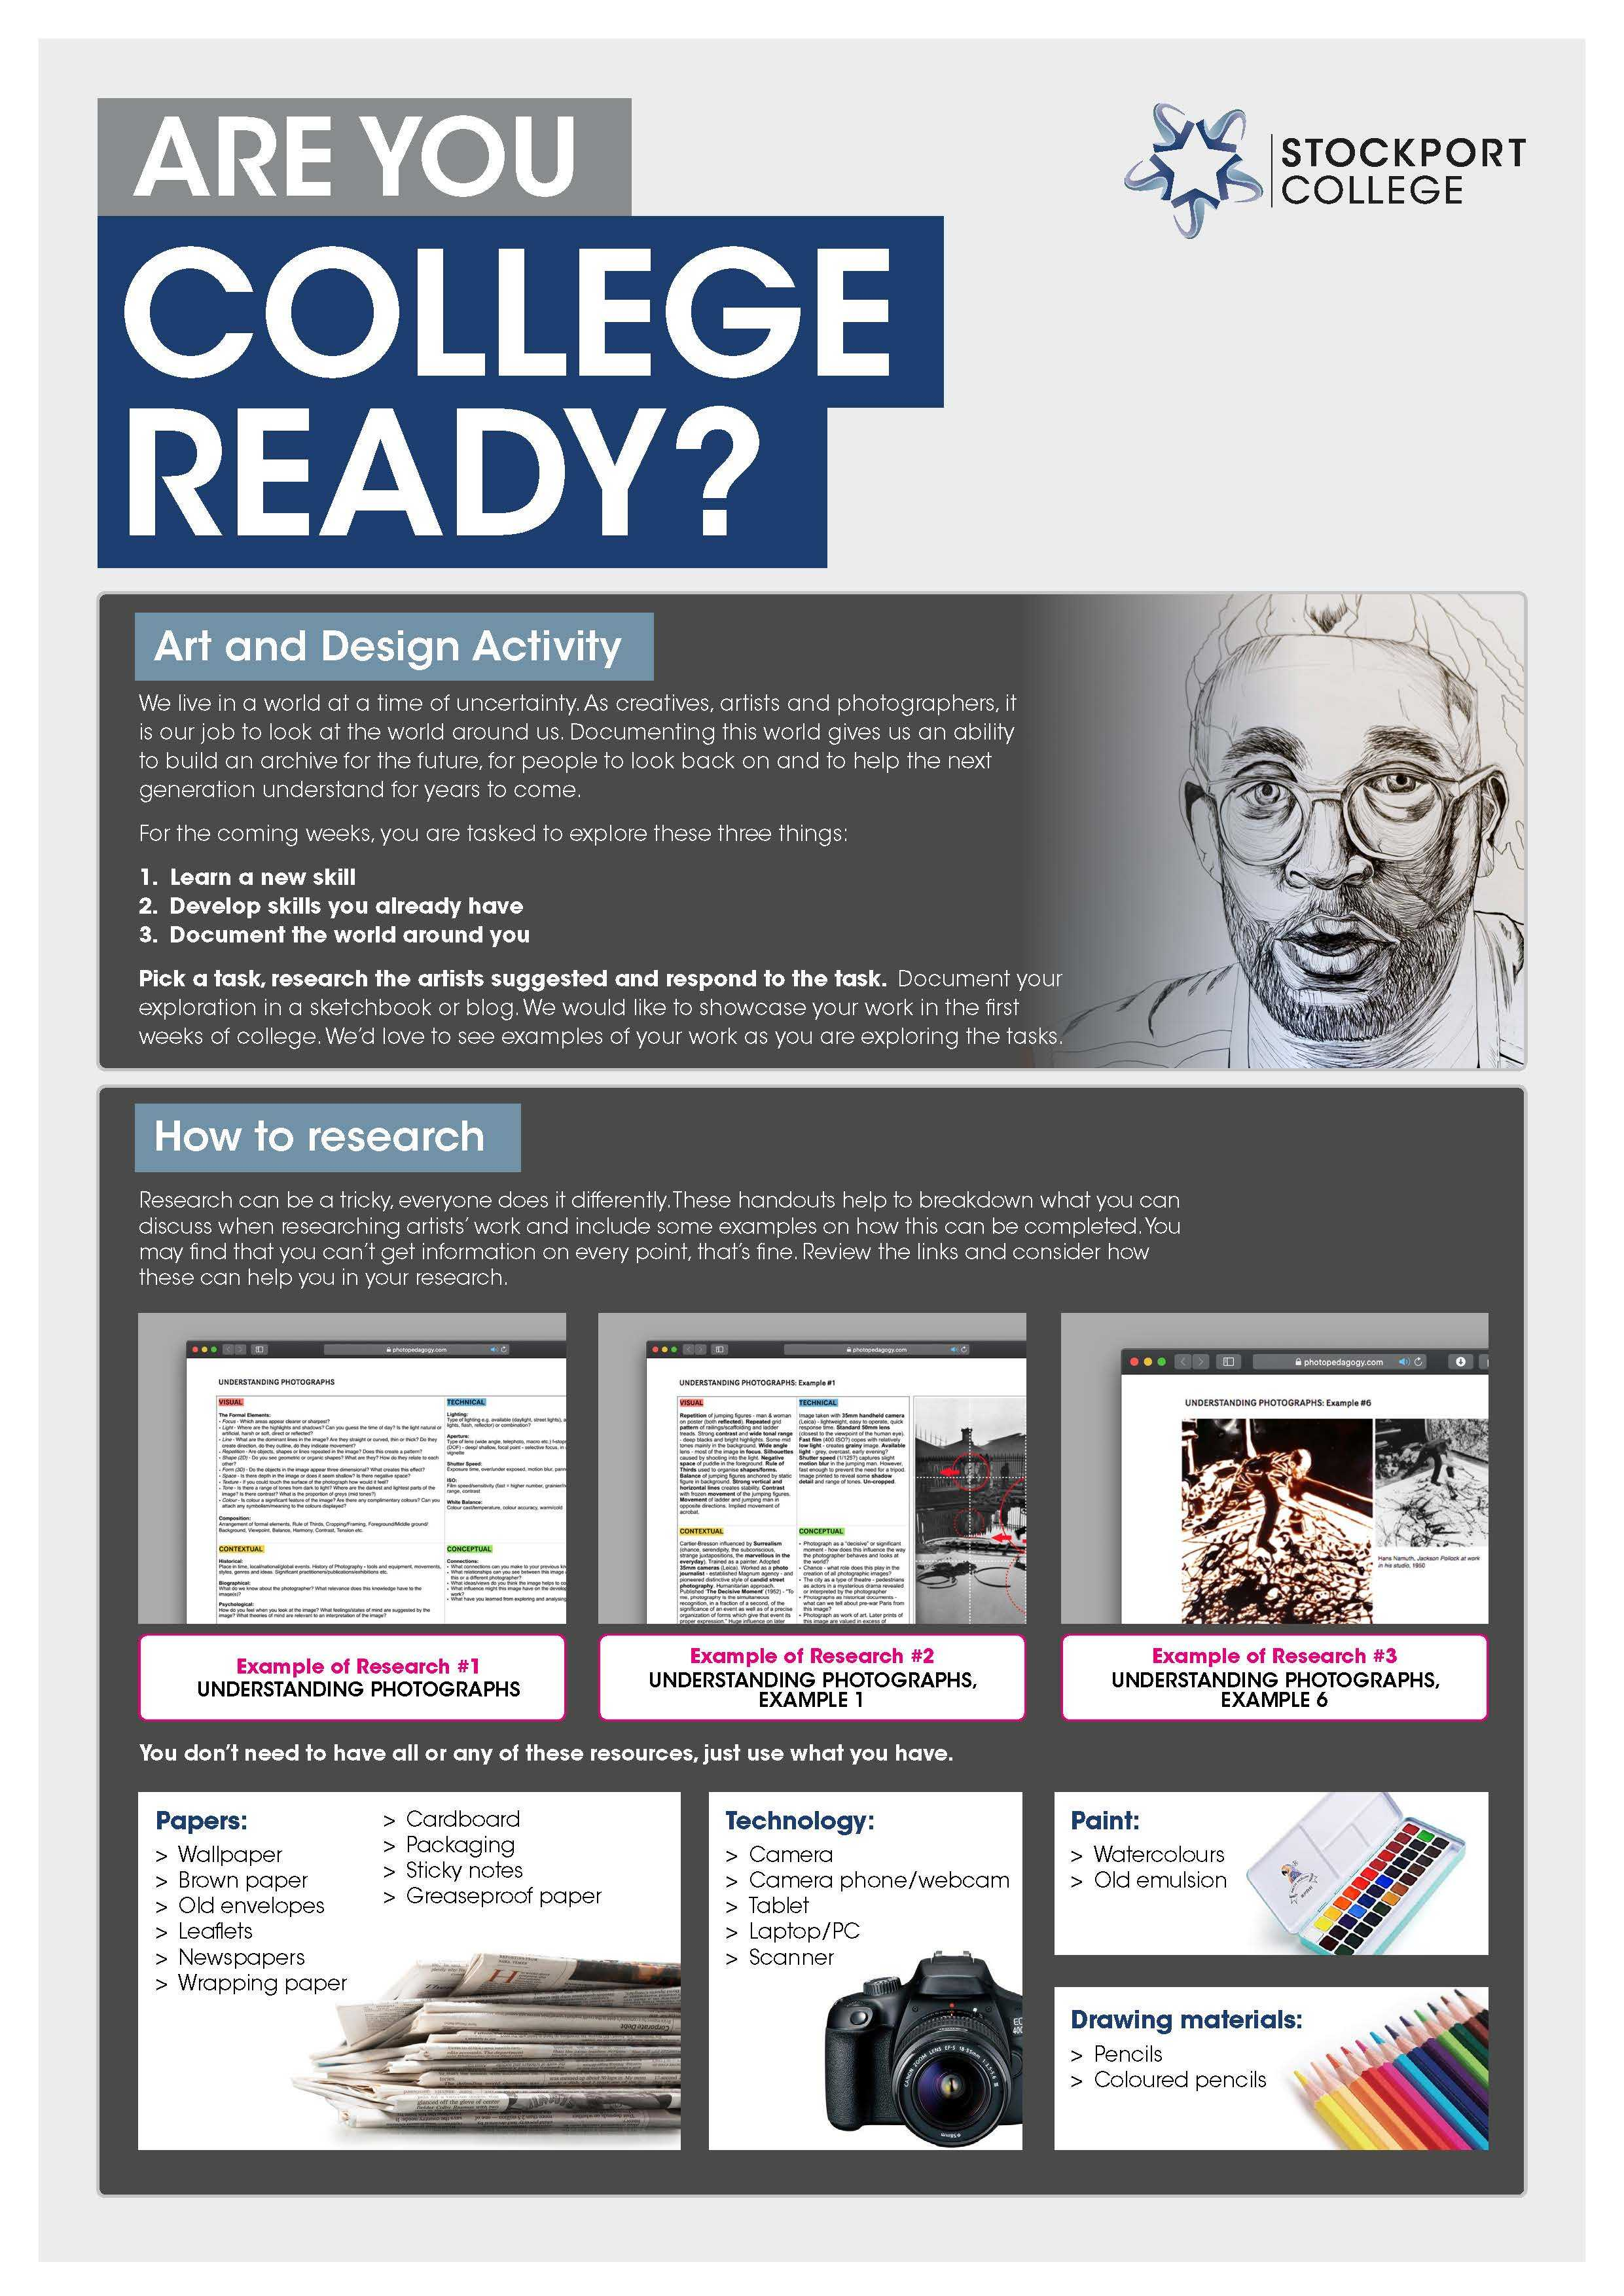 Are You College Ready Transition Leaflet Art Design STOCKPORT DIGITAL Jul20 Page 1